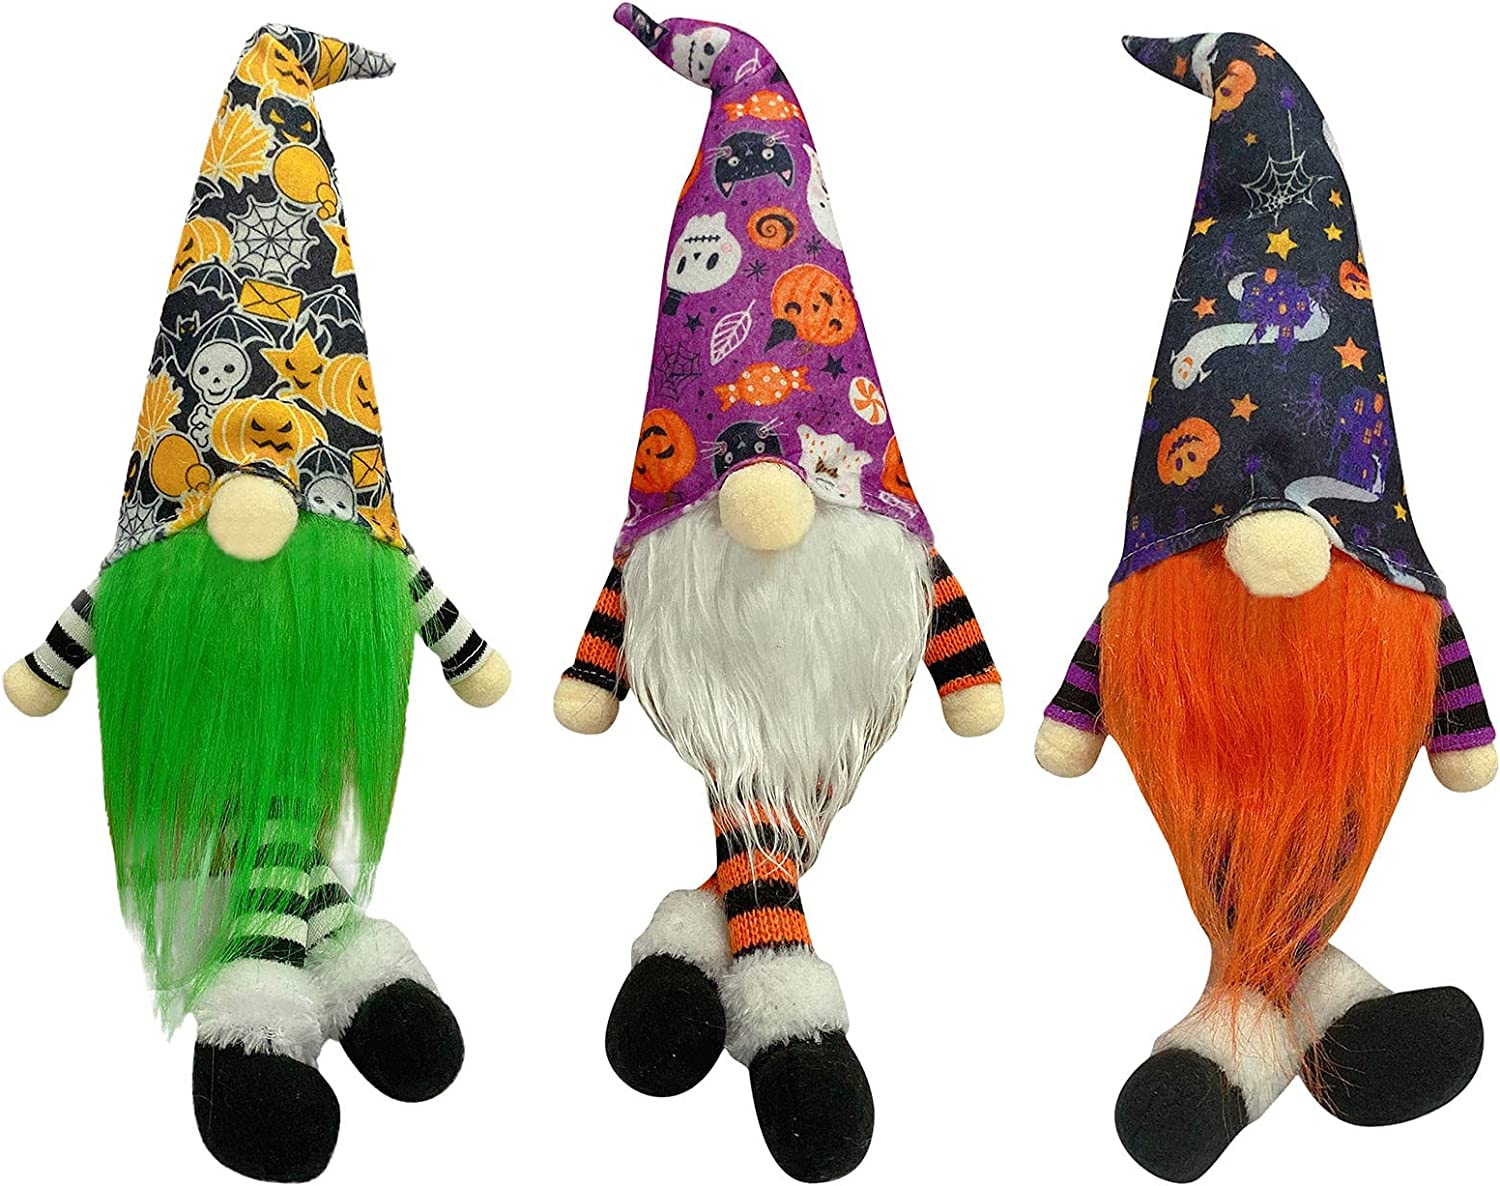 OLOPE 3Pcs Halloween latest Gnome Plush Do Faceless Handmade Free shipping anywhere in the nation Decoration